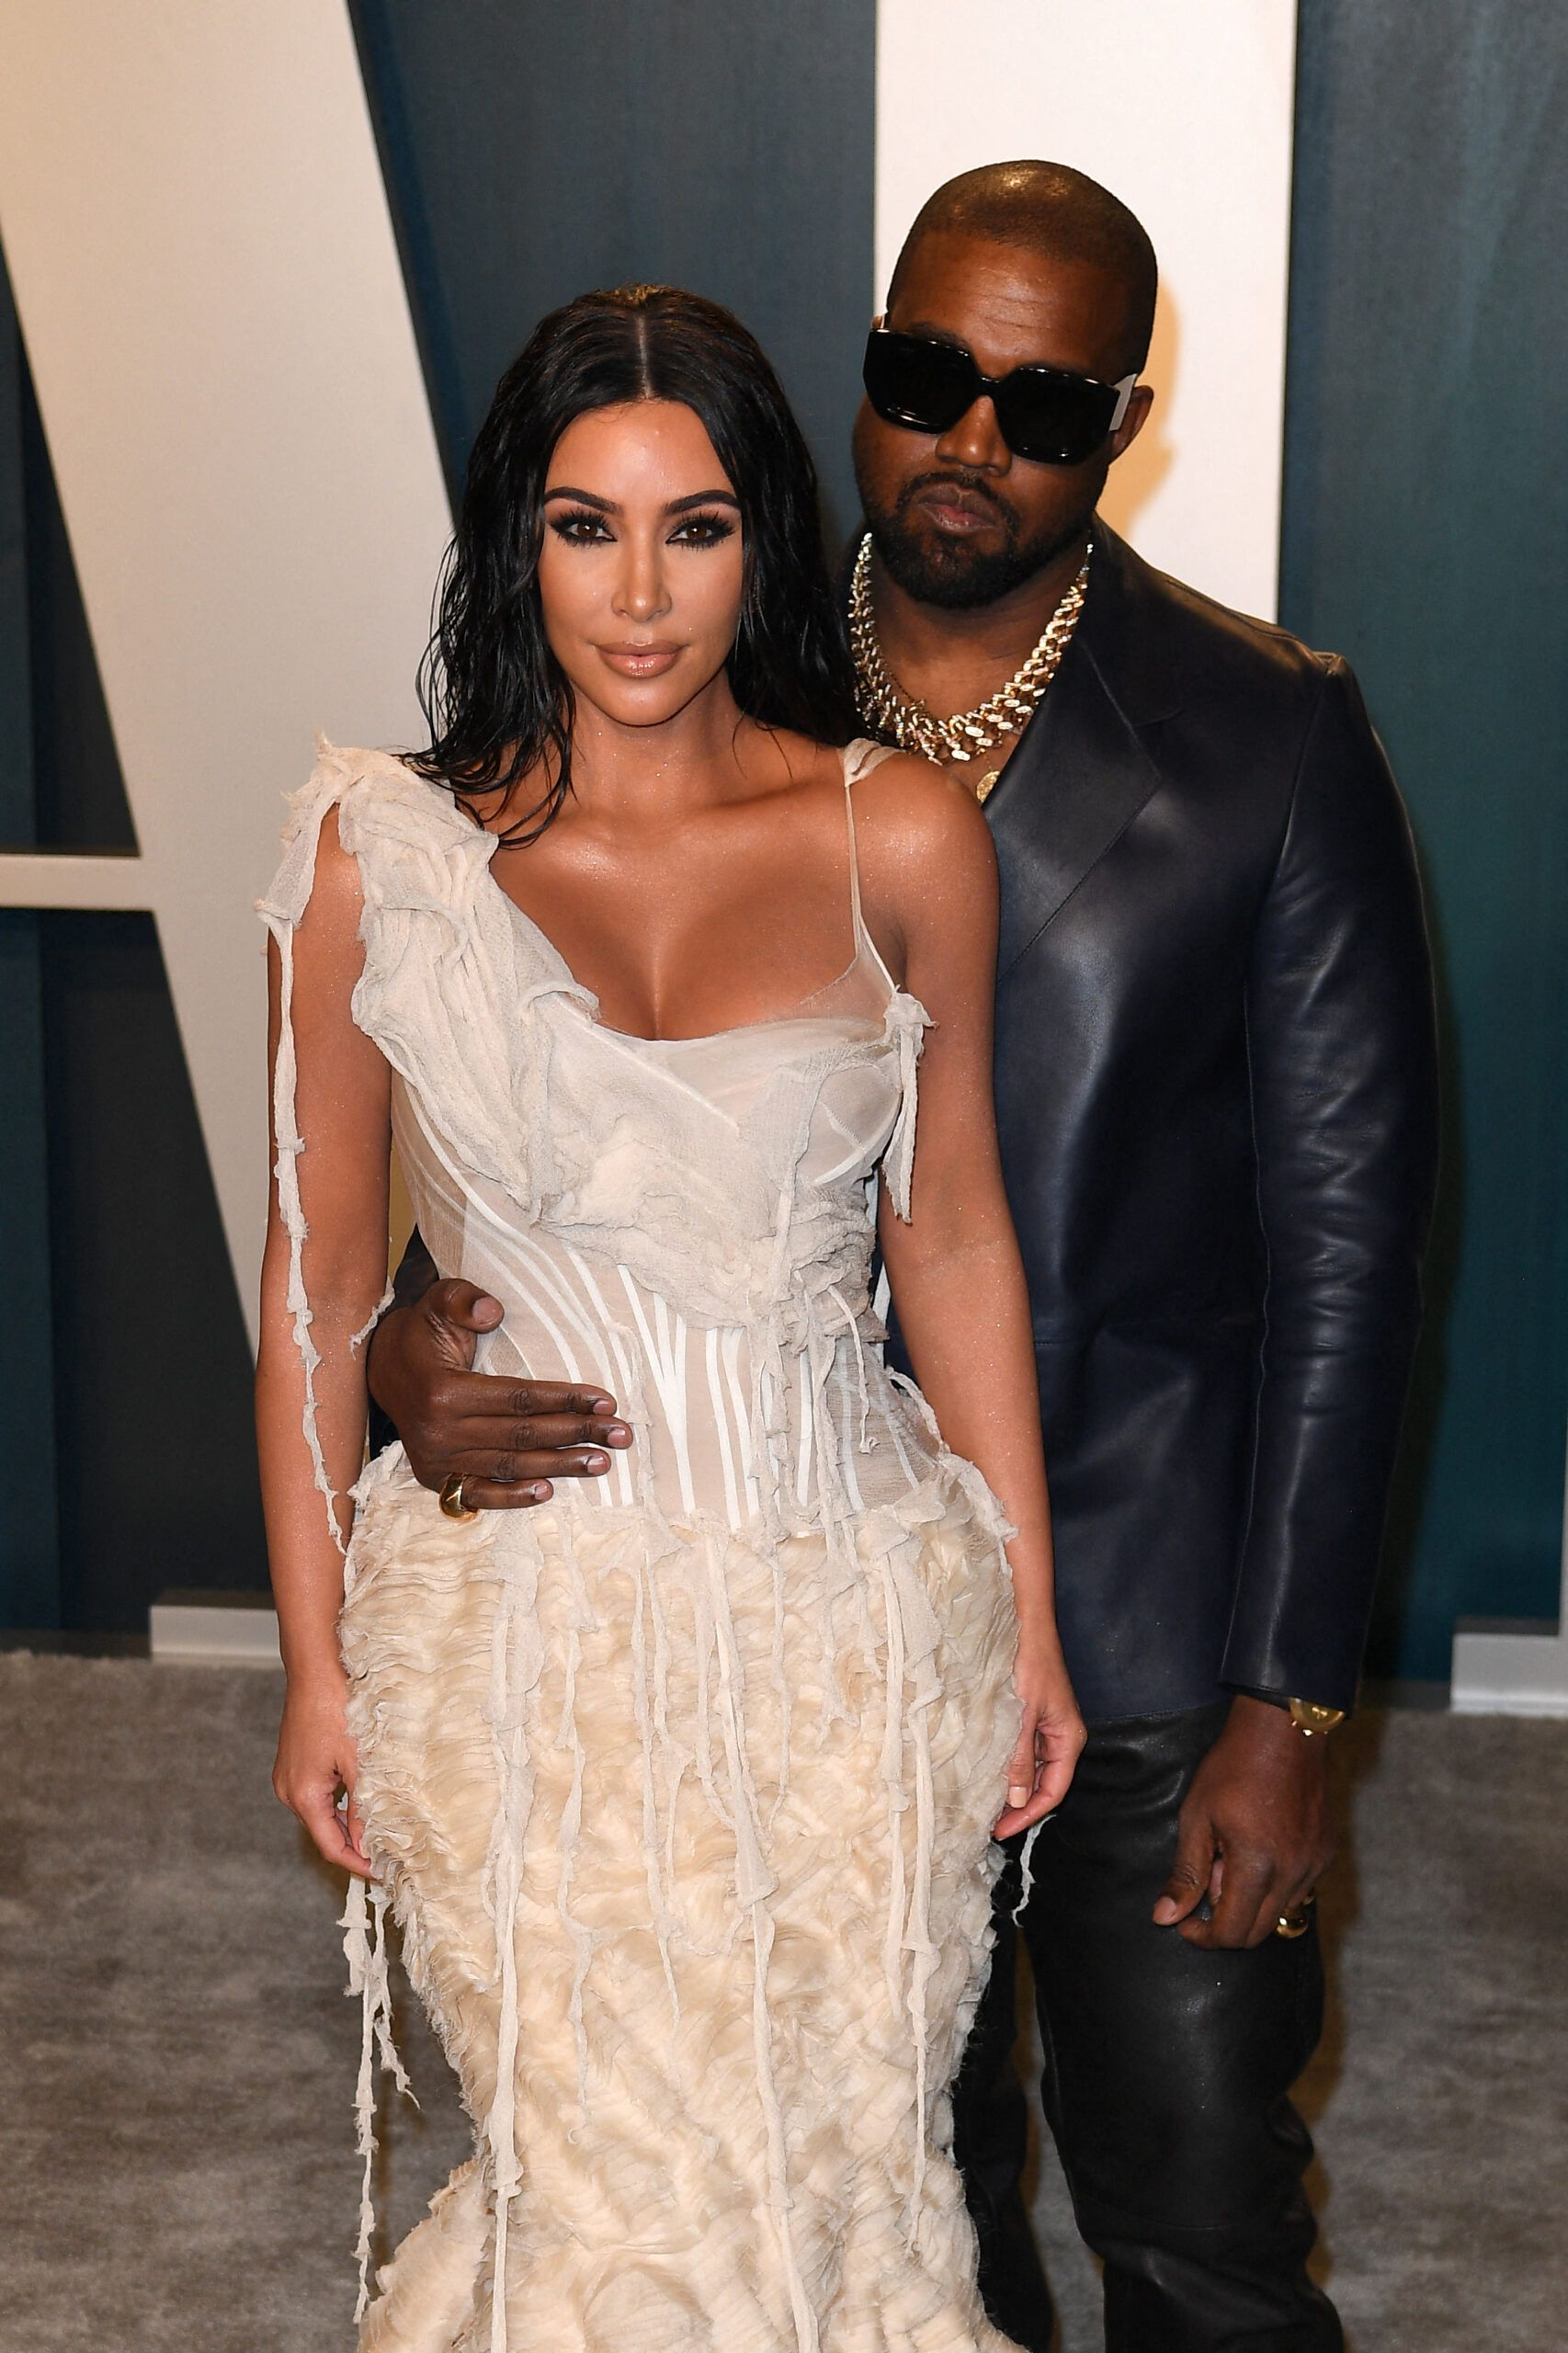 Kim Kardashian Is Preparing To Divorce Kanye West